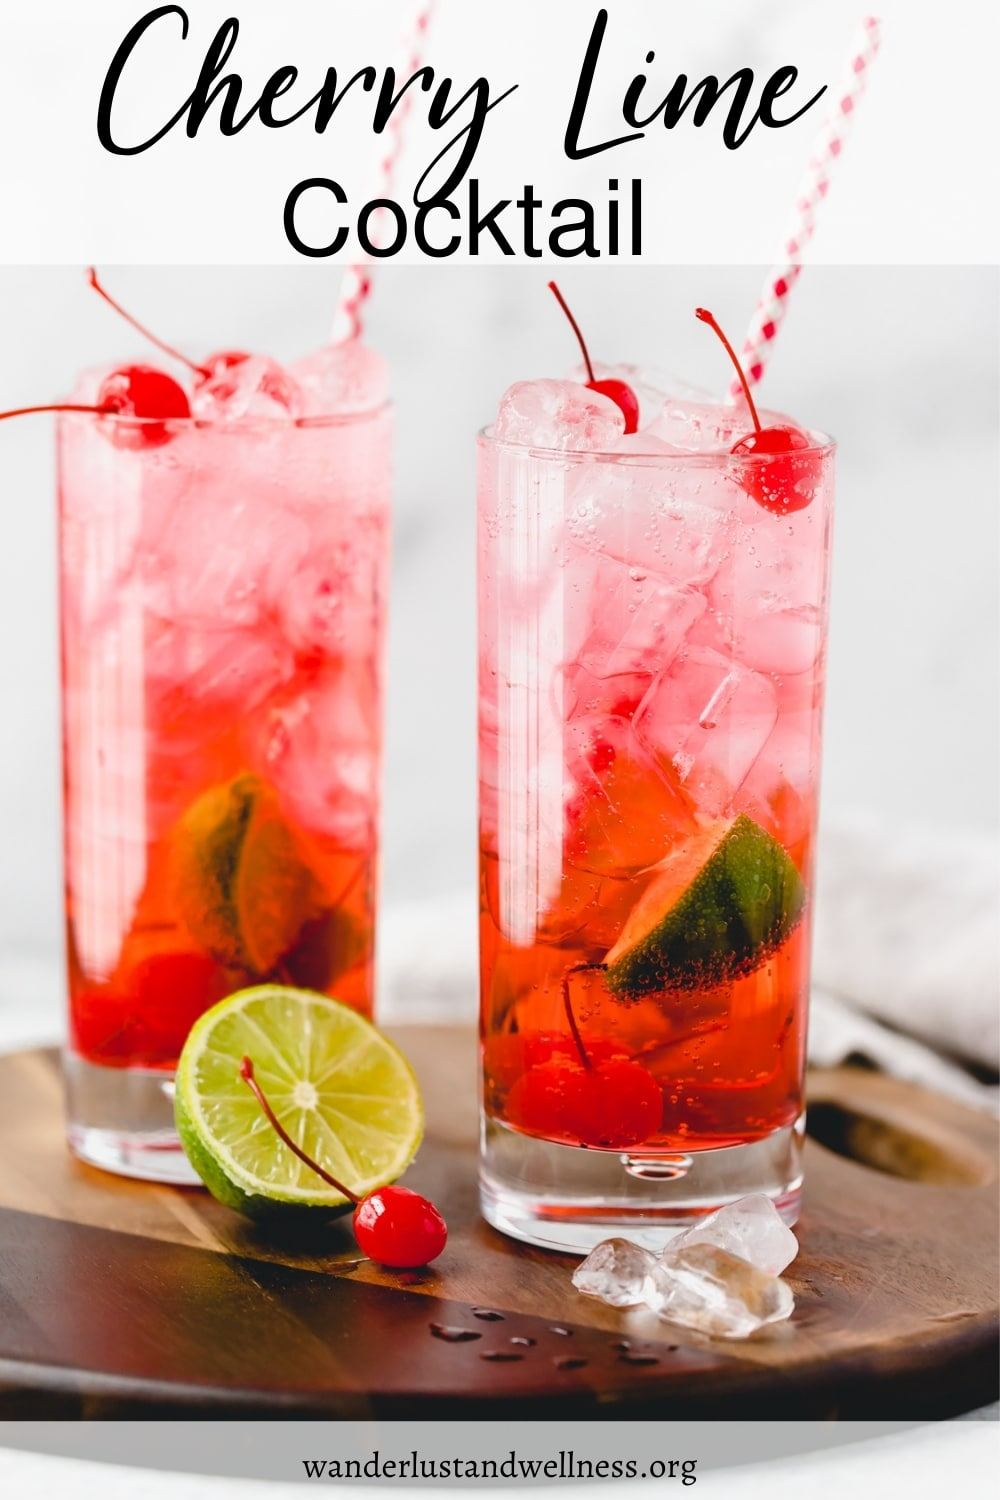 two cherry lime la croix cocktails on a wooden board